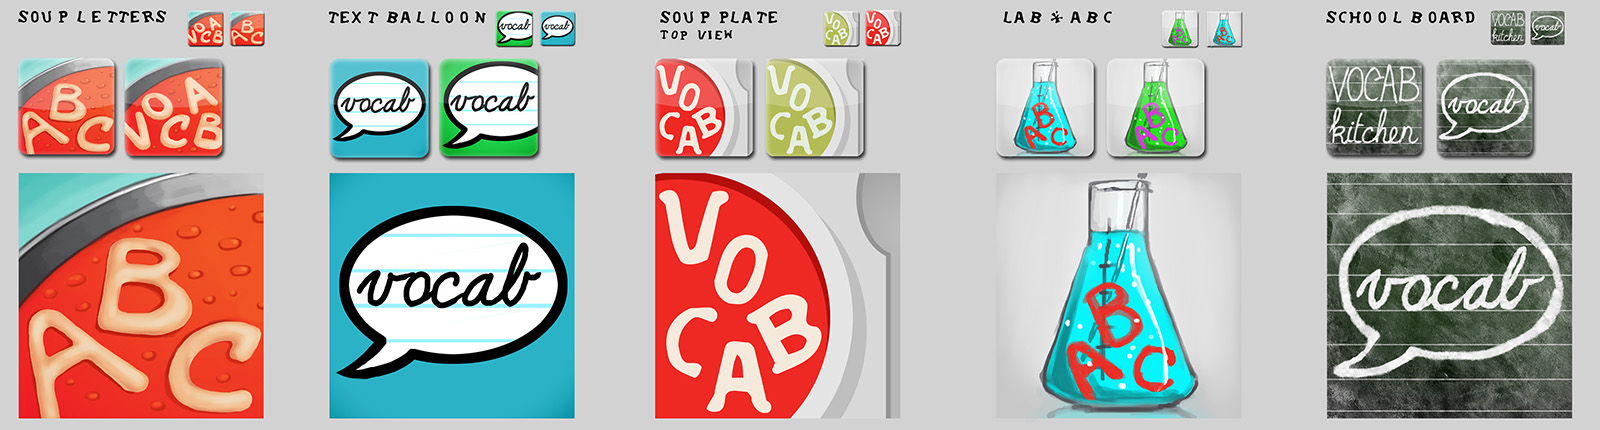 Vocabkitchen_icons